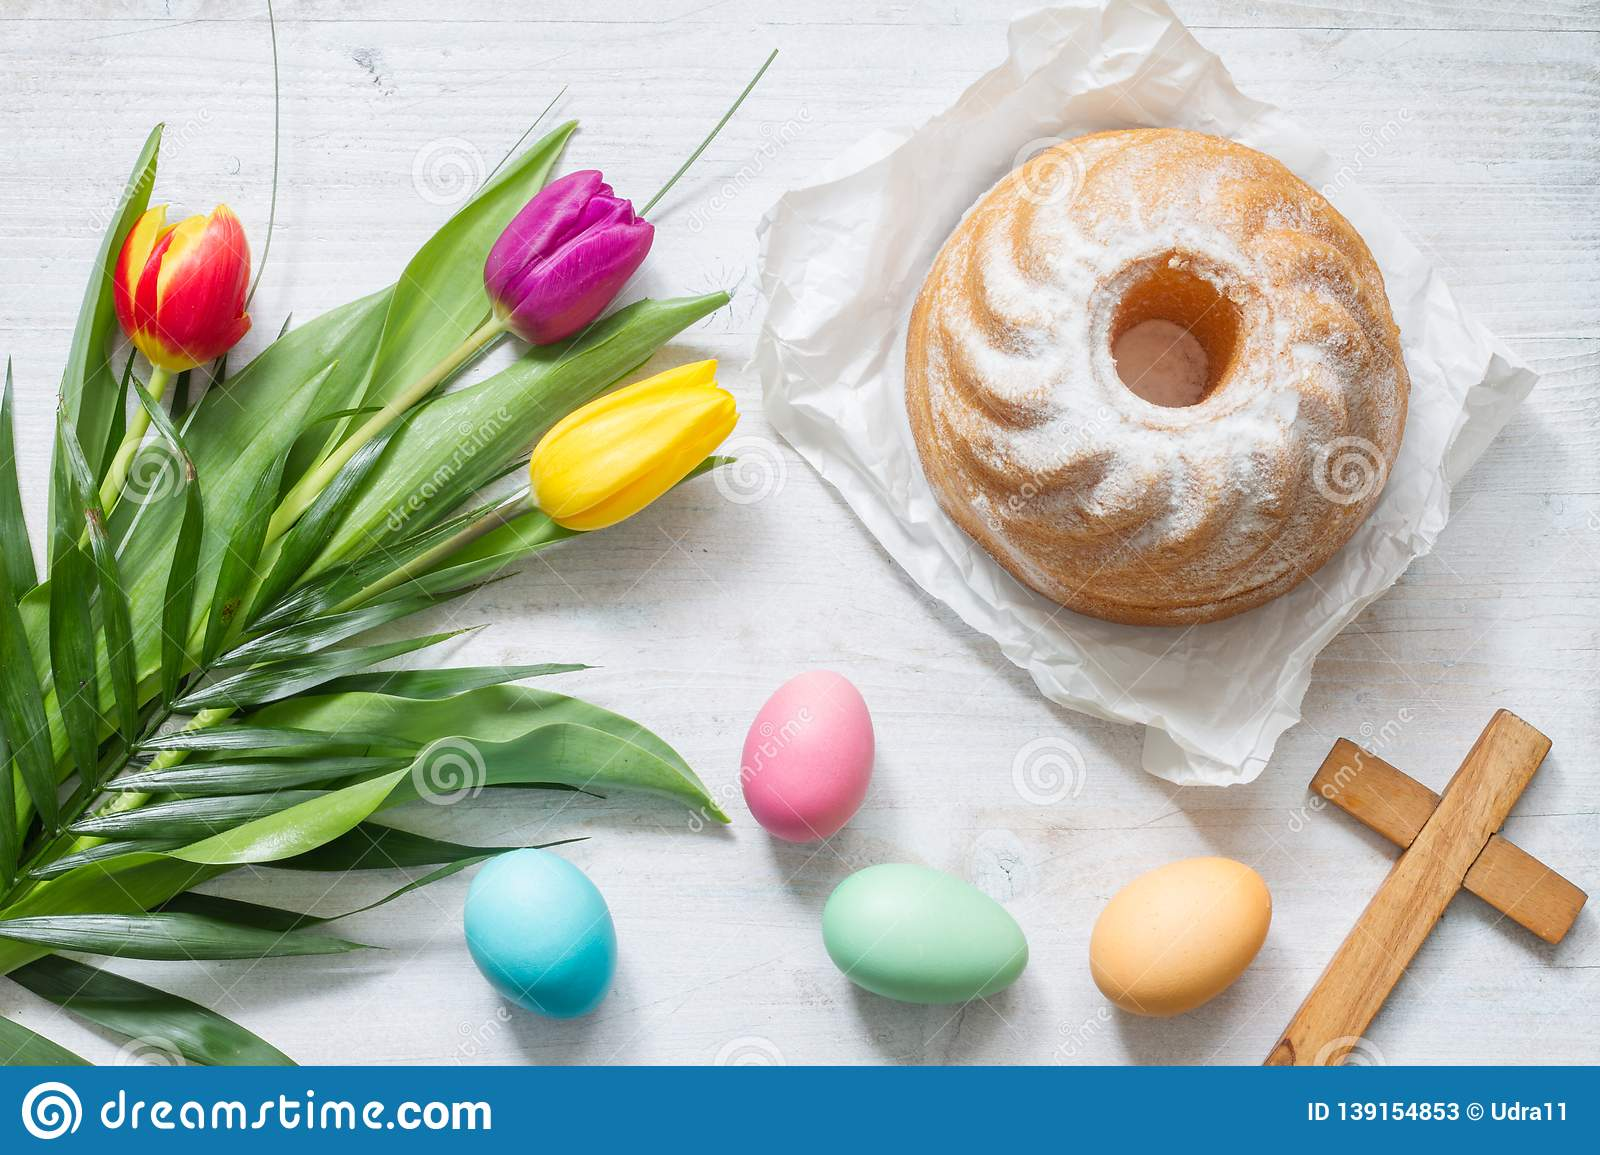 Easter colorful spring tulips with palm cross cake and eggs decoration on white wooden natural background